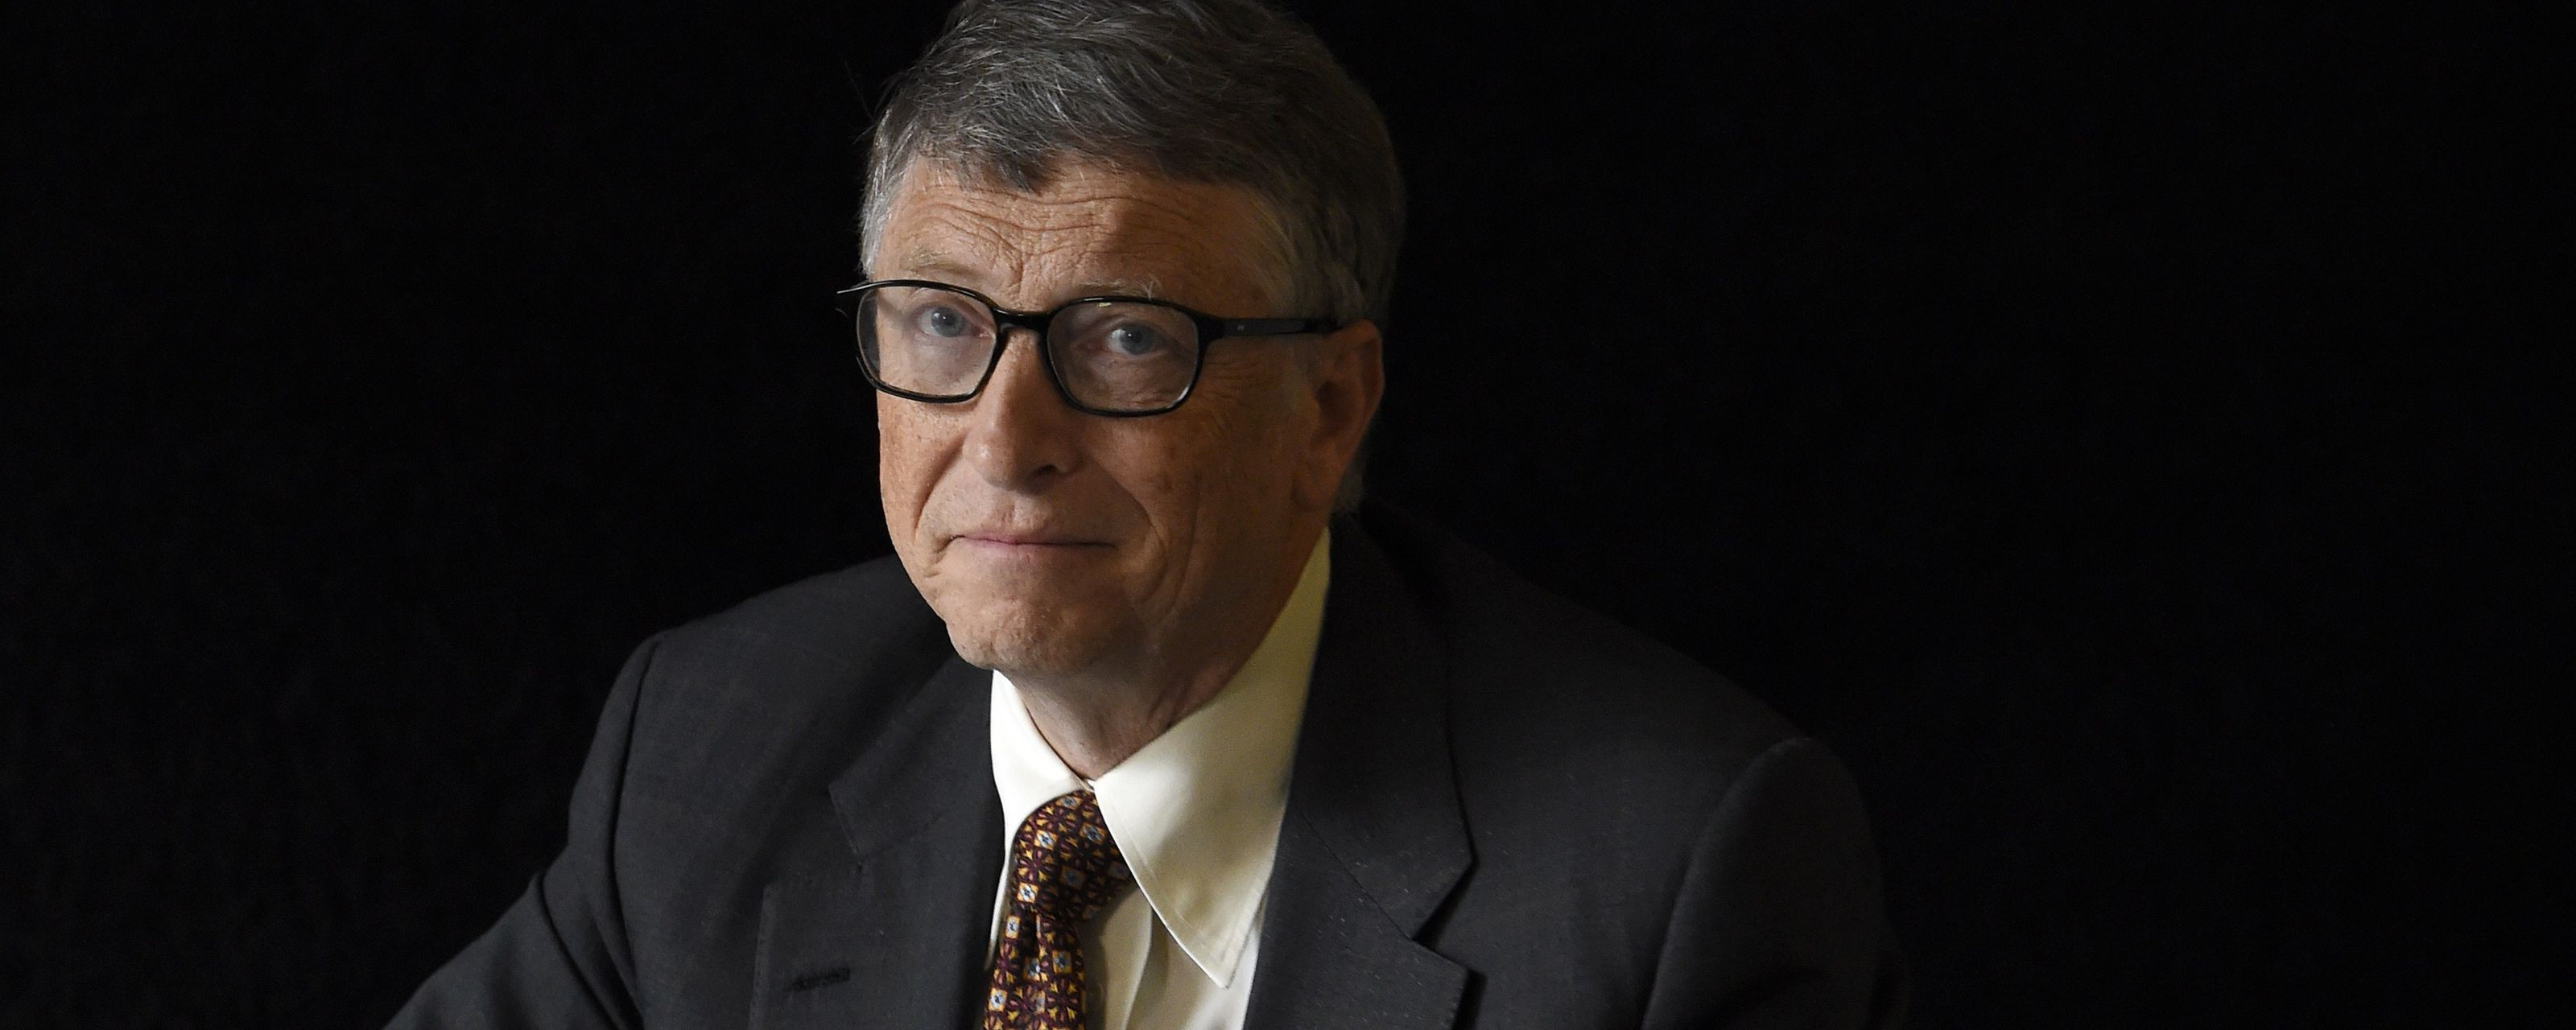 Richest People In America 2015